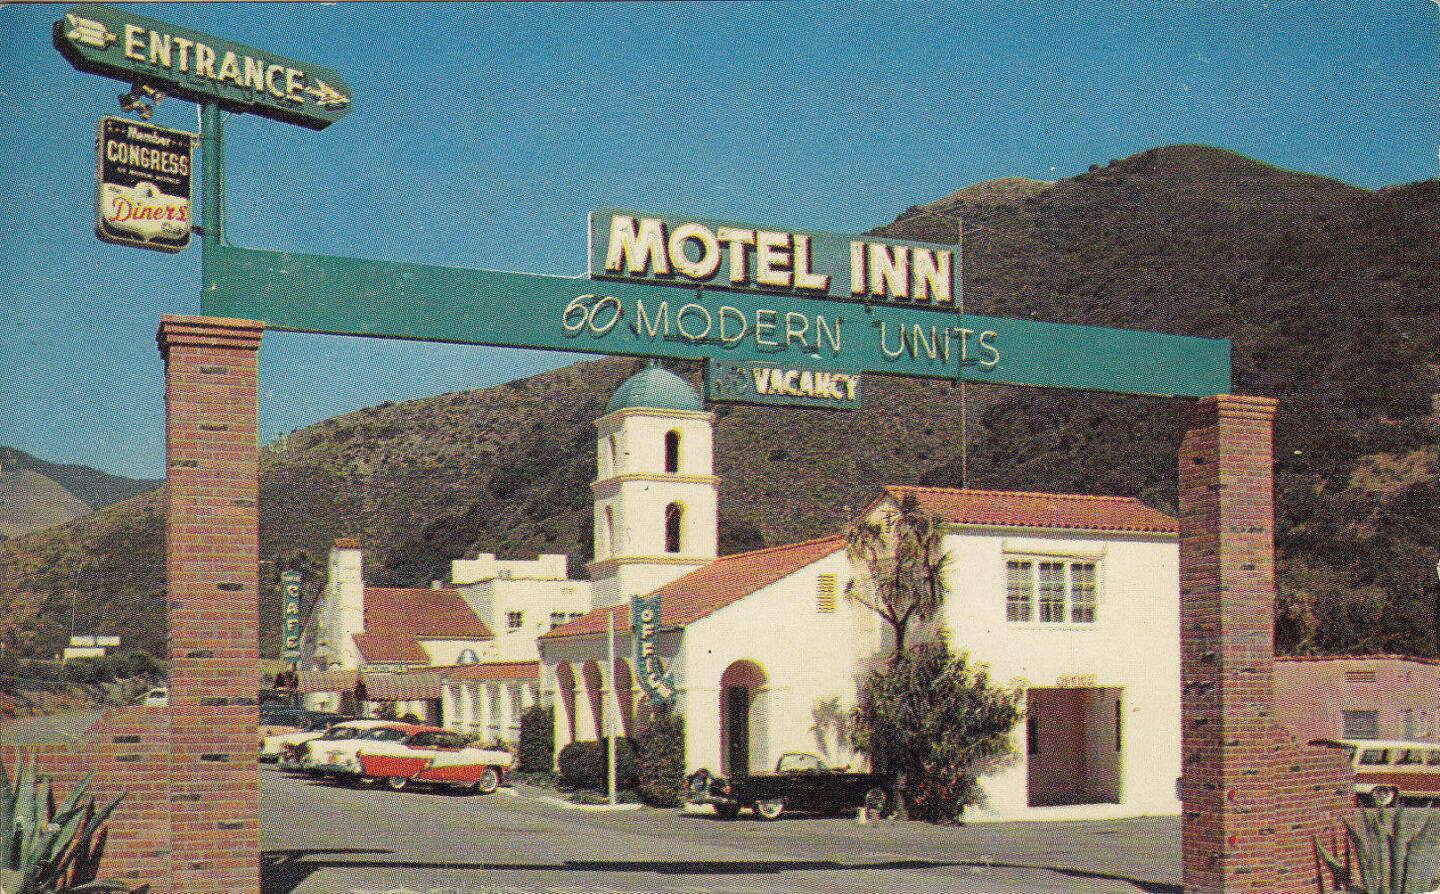 "The Motel Inn in San Luis Obispo boasted ""60 modern units"" plus other amenities, during its mid-century heyday."